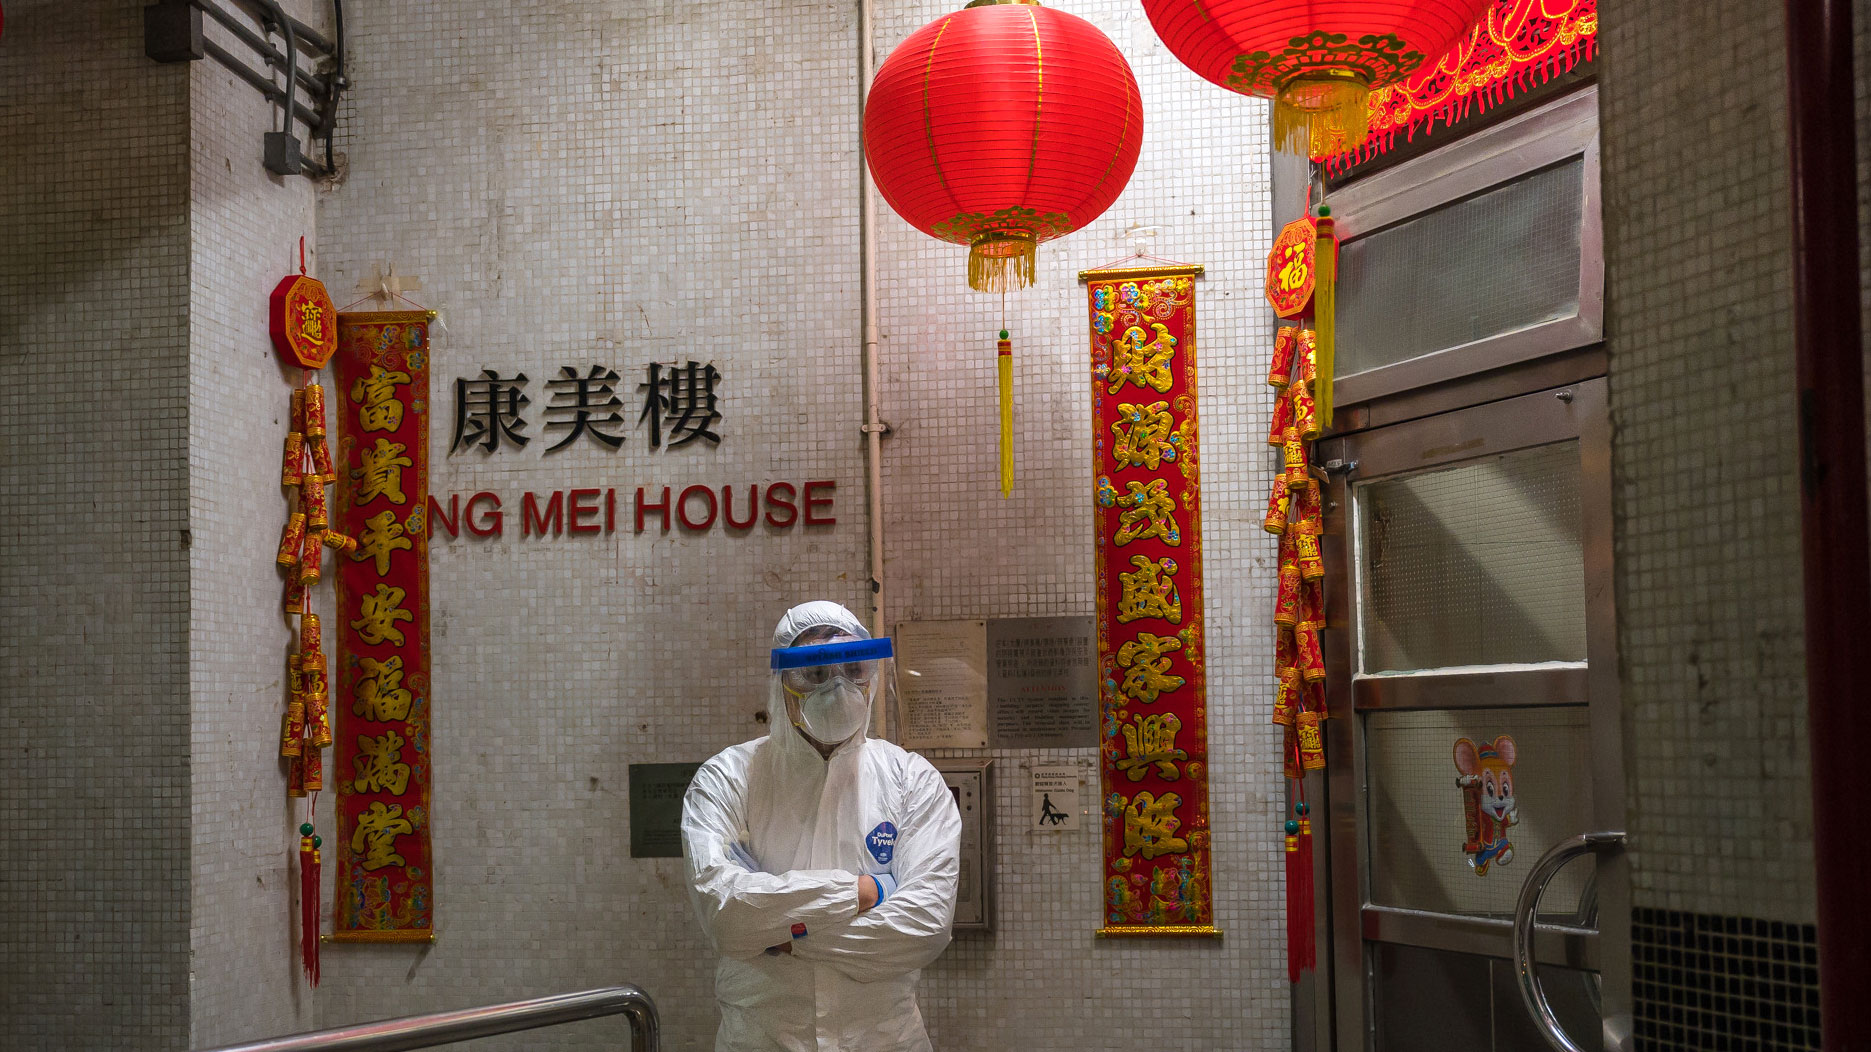 An official stands guard at an entrance to the Hong Mei House residential building in Hong Kong on Tuesday.